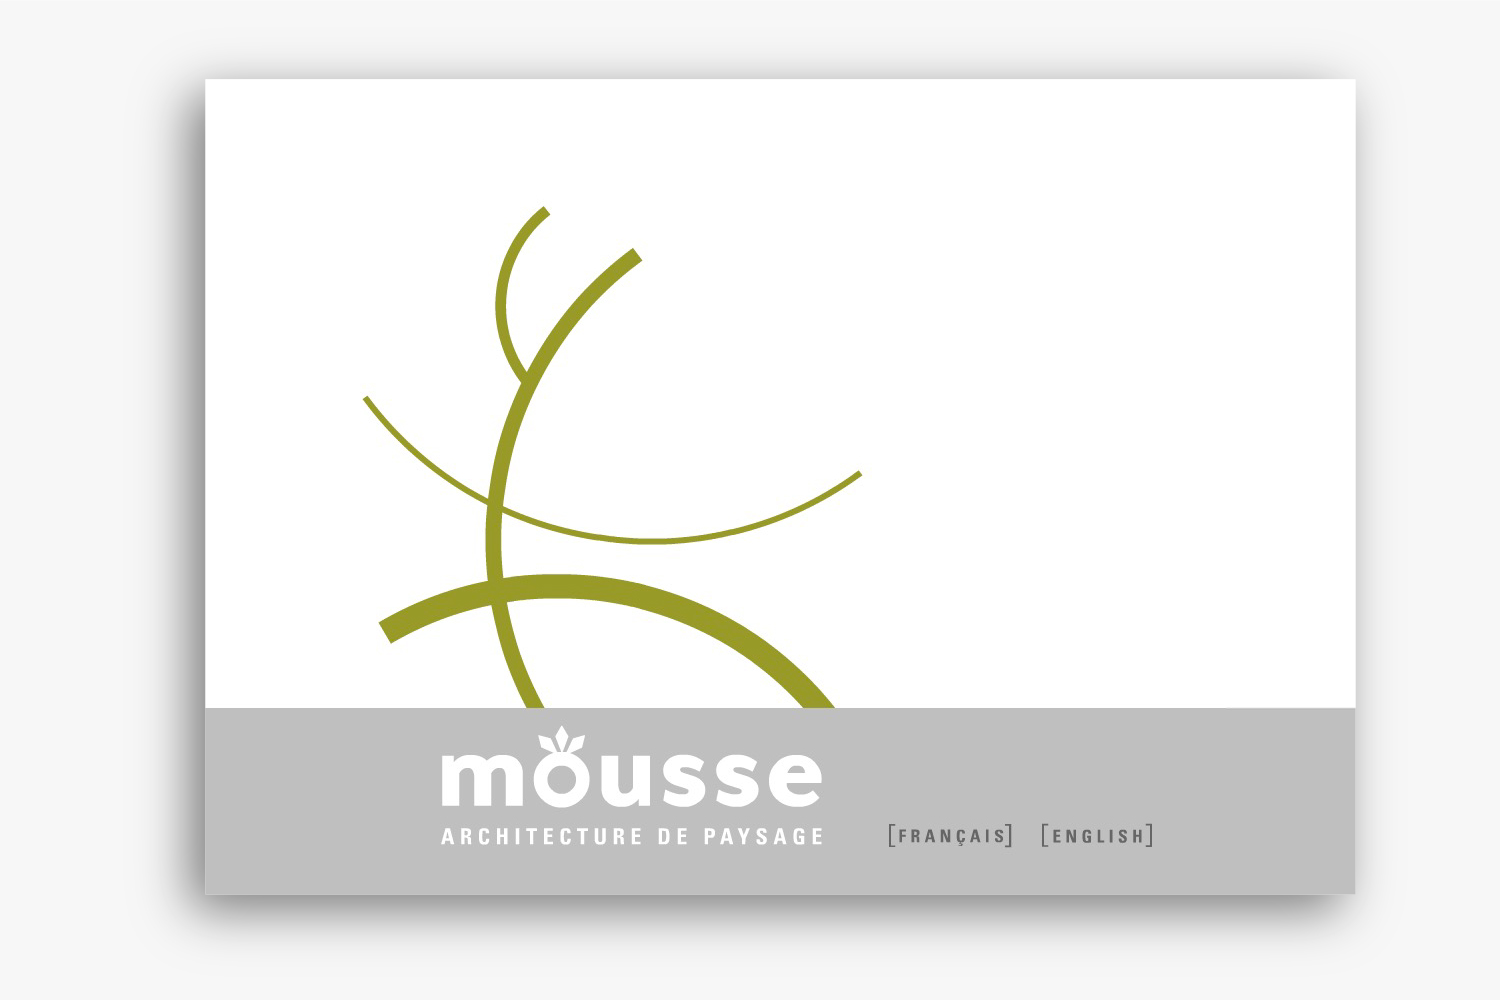 Mousse architecture de paysage - Site Web